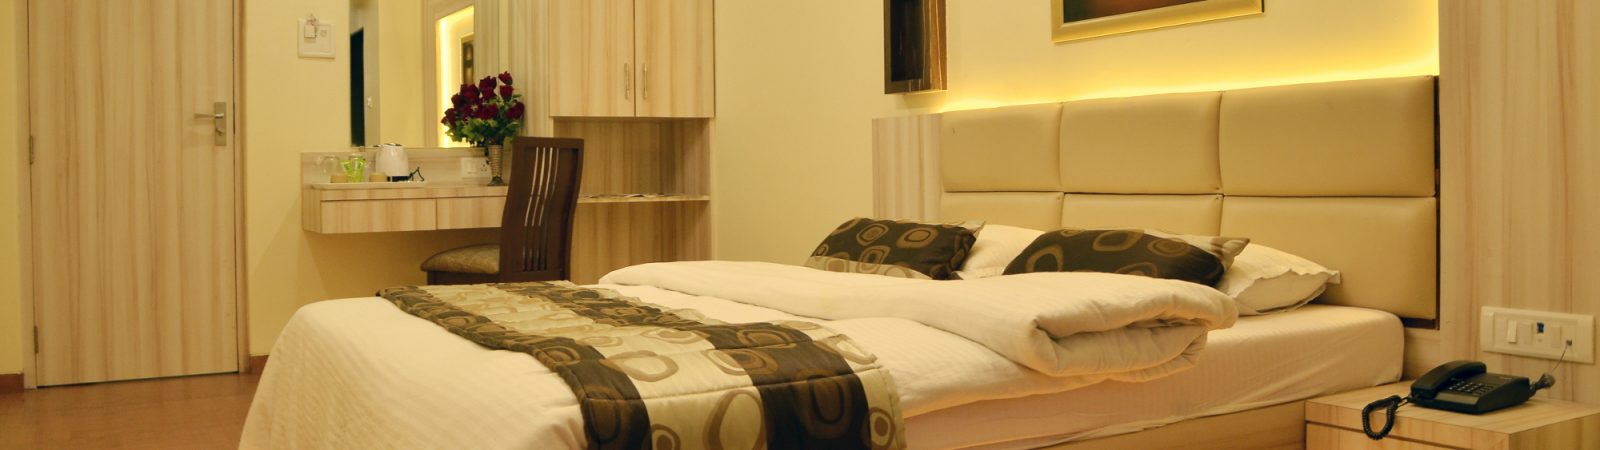 hotel-rooms-near-mulund